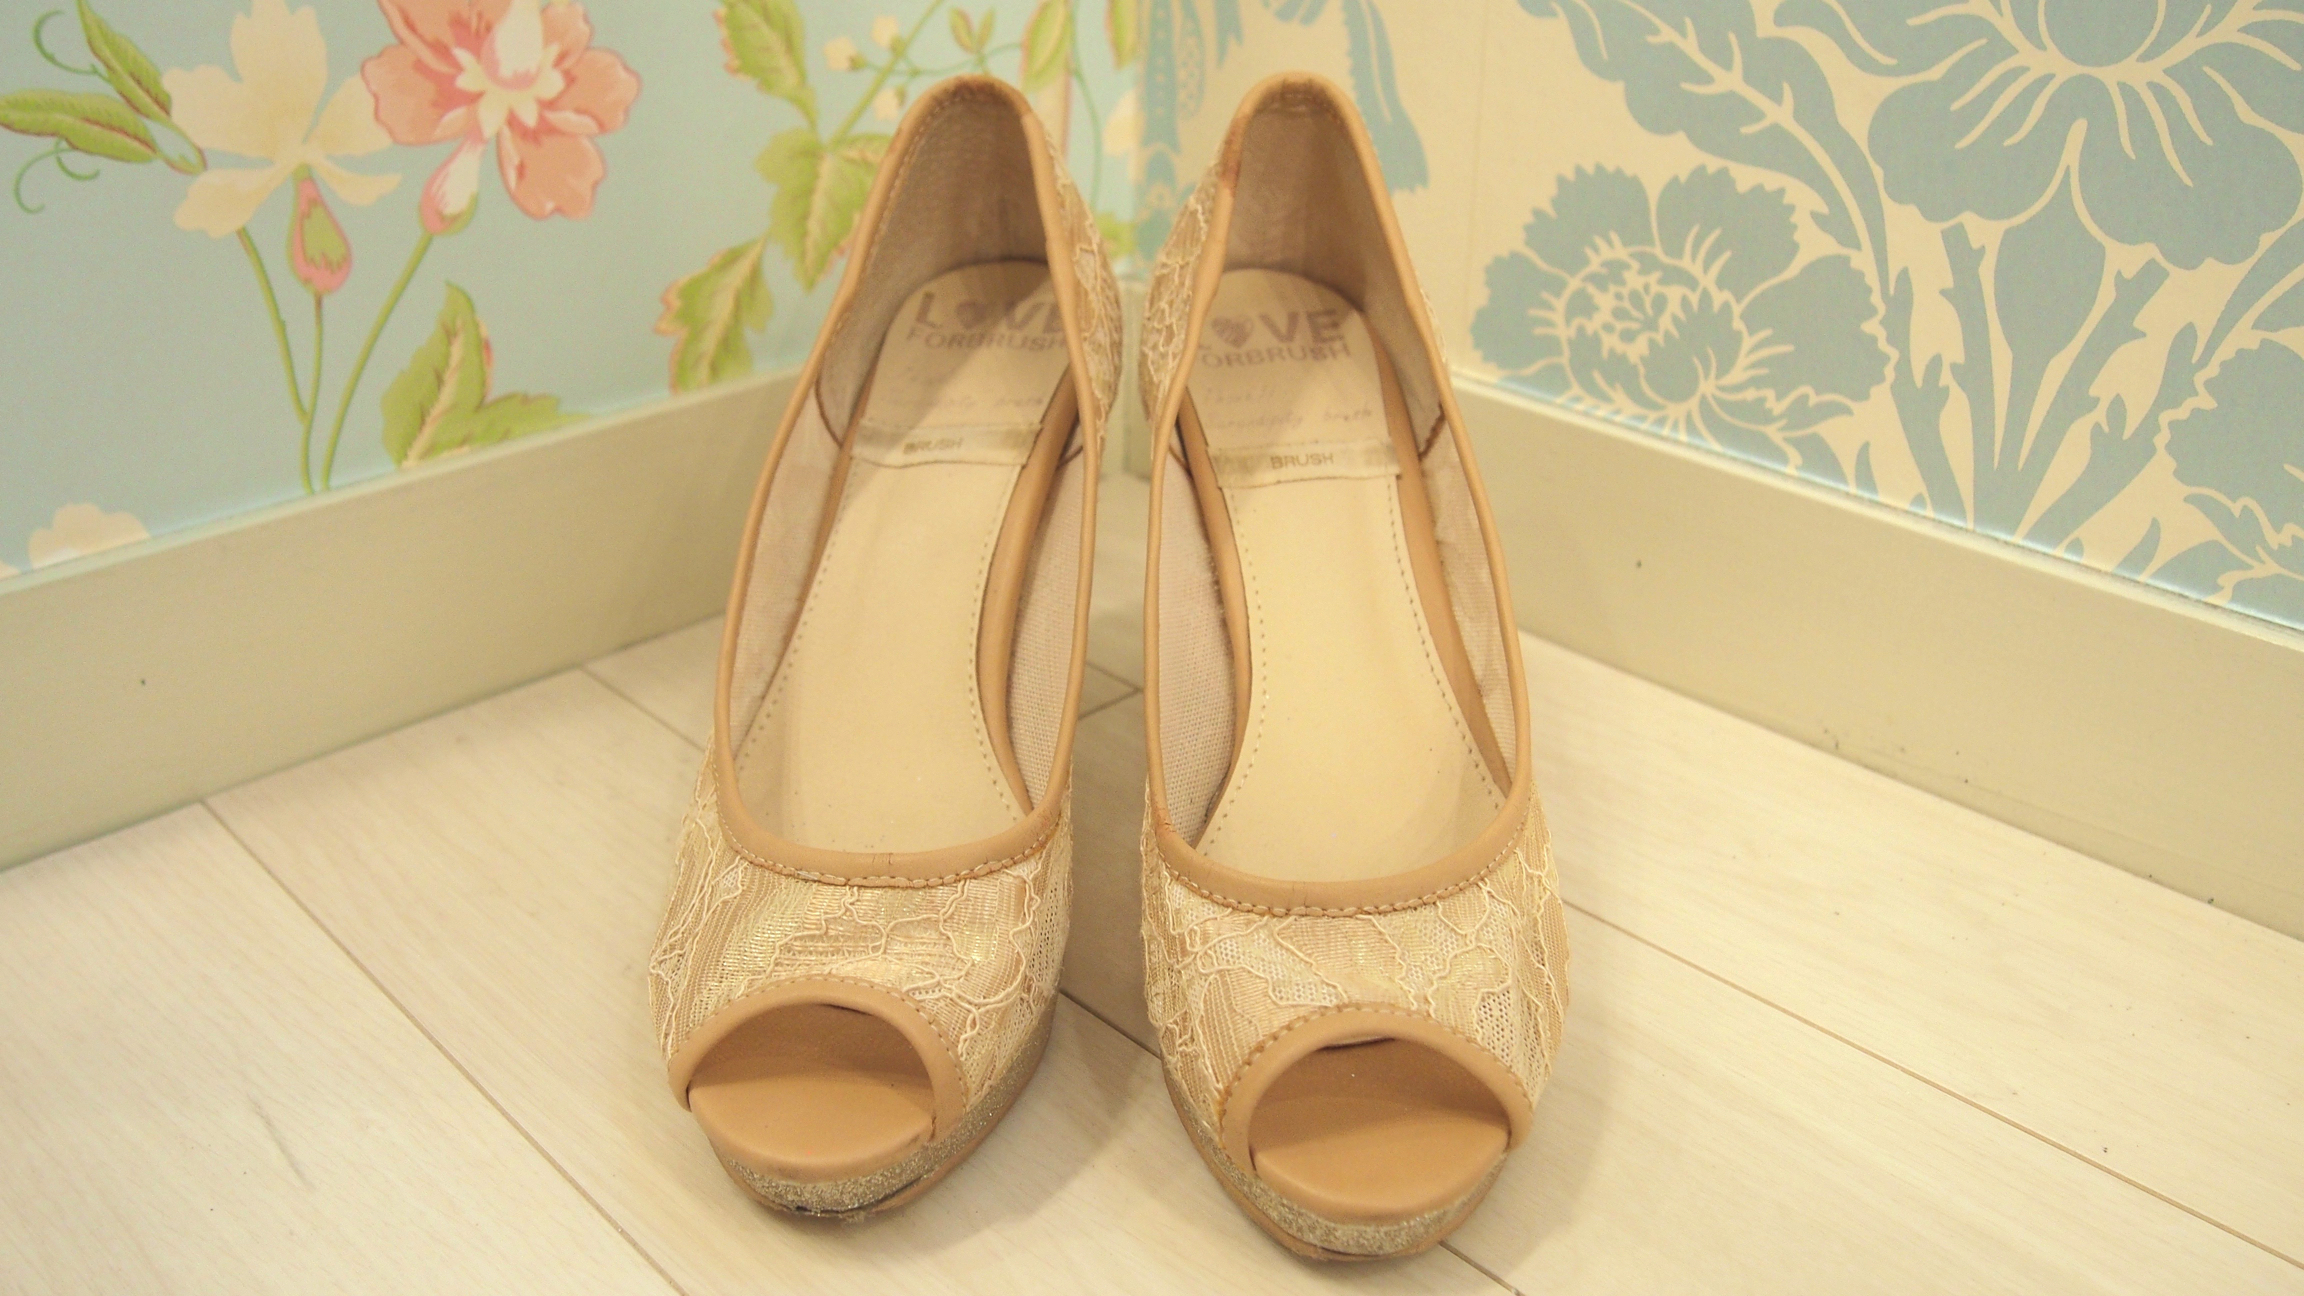 nr_shoes_012